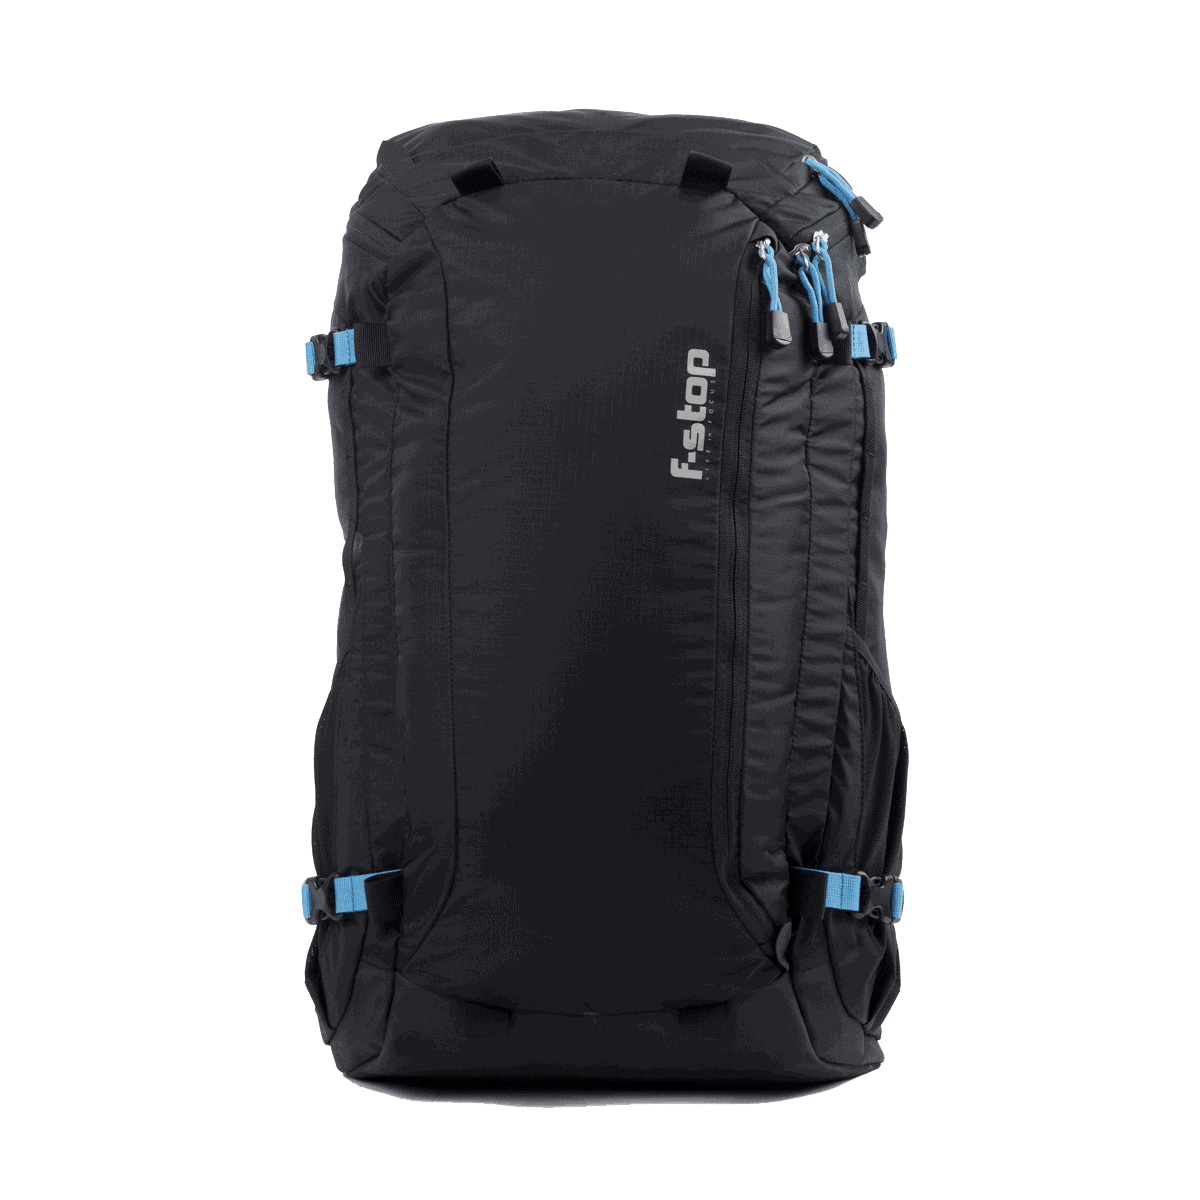 loka ul backpack fstop gear francesco gola 1